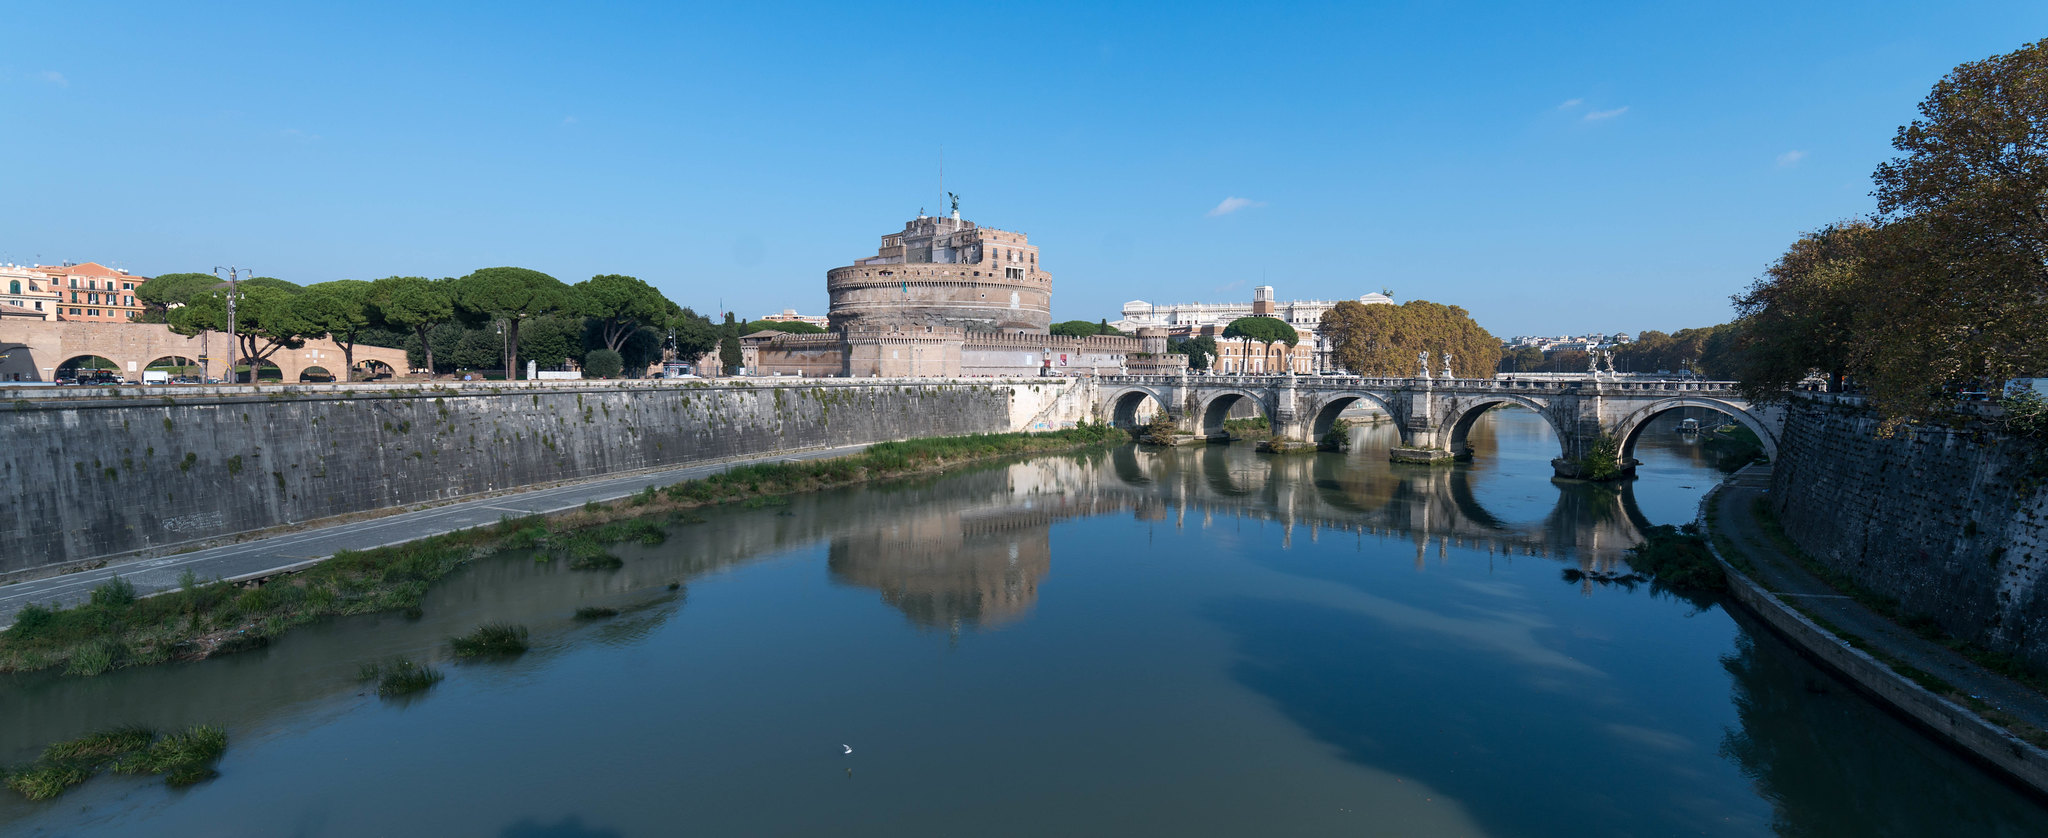 The View towards Castel Sant Angelo Rome with reflections in the river